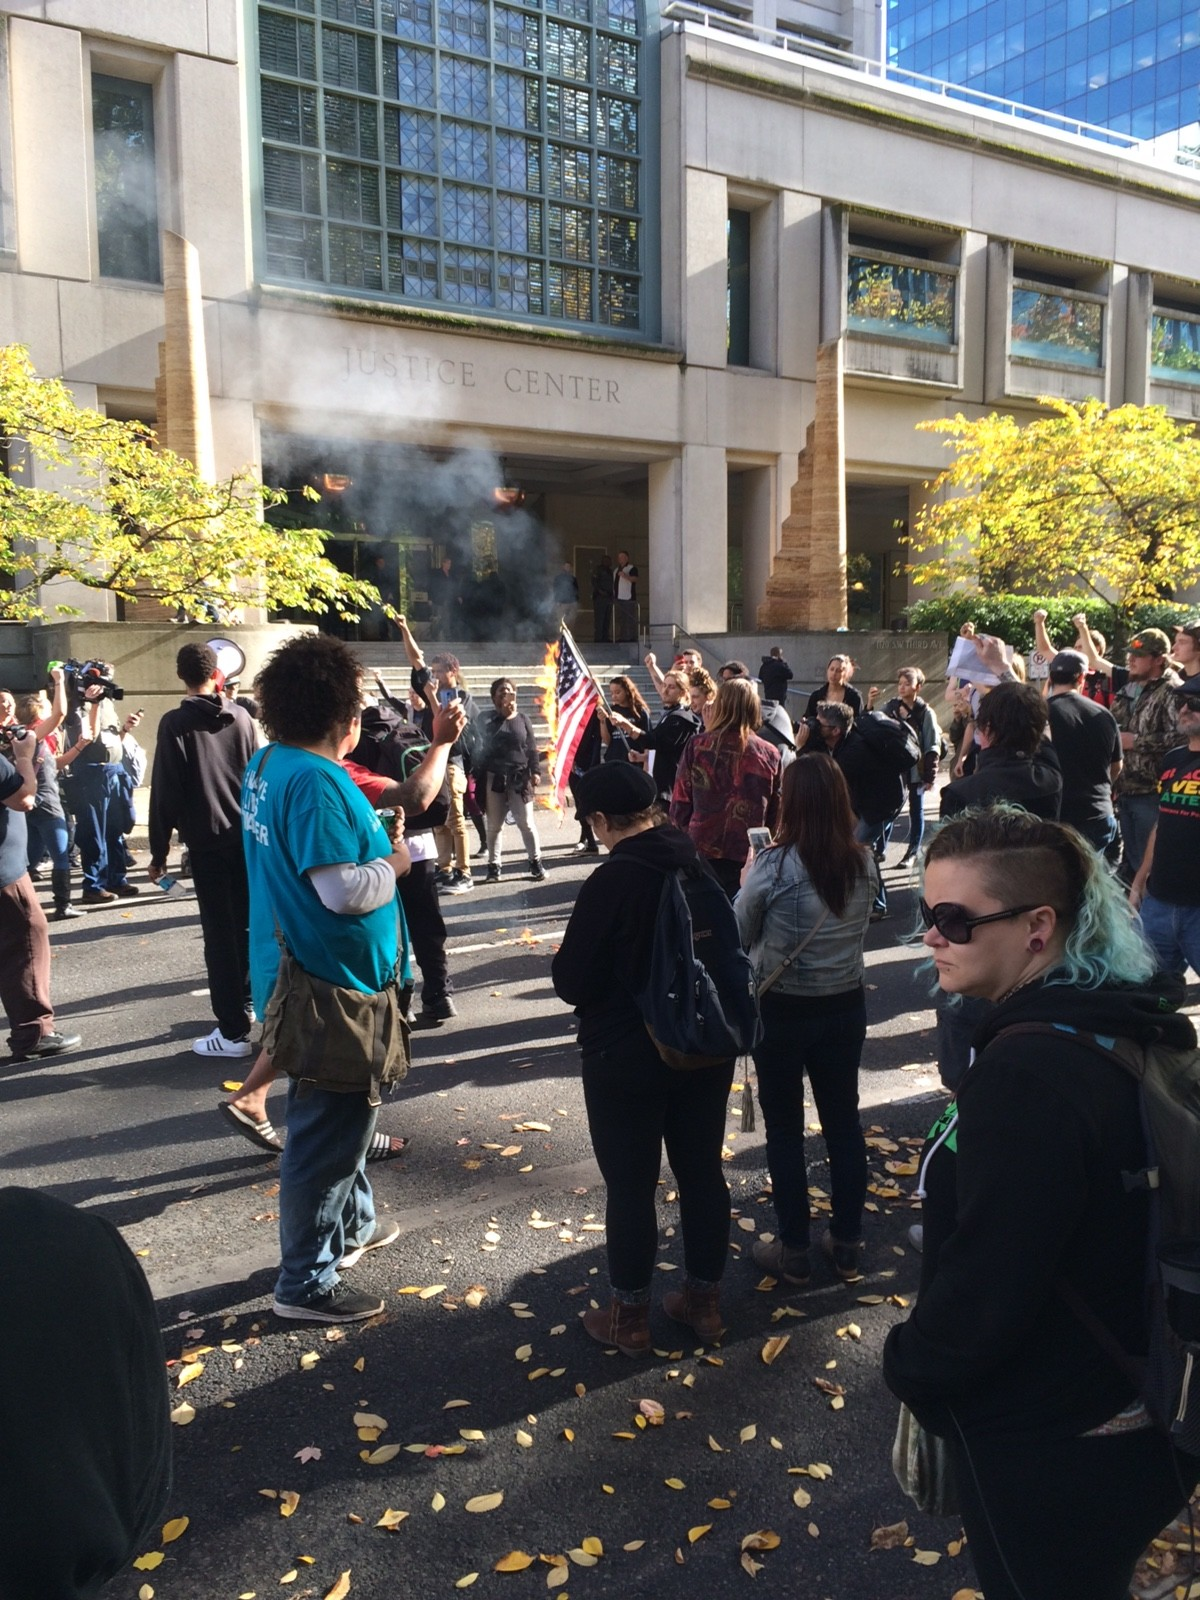 Don't Shoot Portland protesters burn an American flag on Oct. 29, 2016. (Nigel Jaquiss)